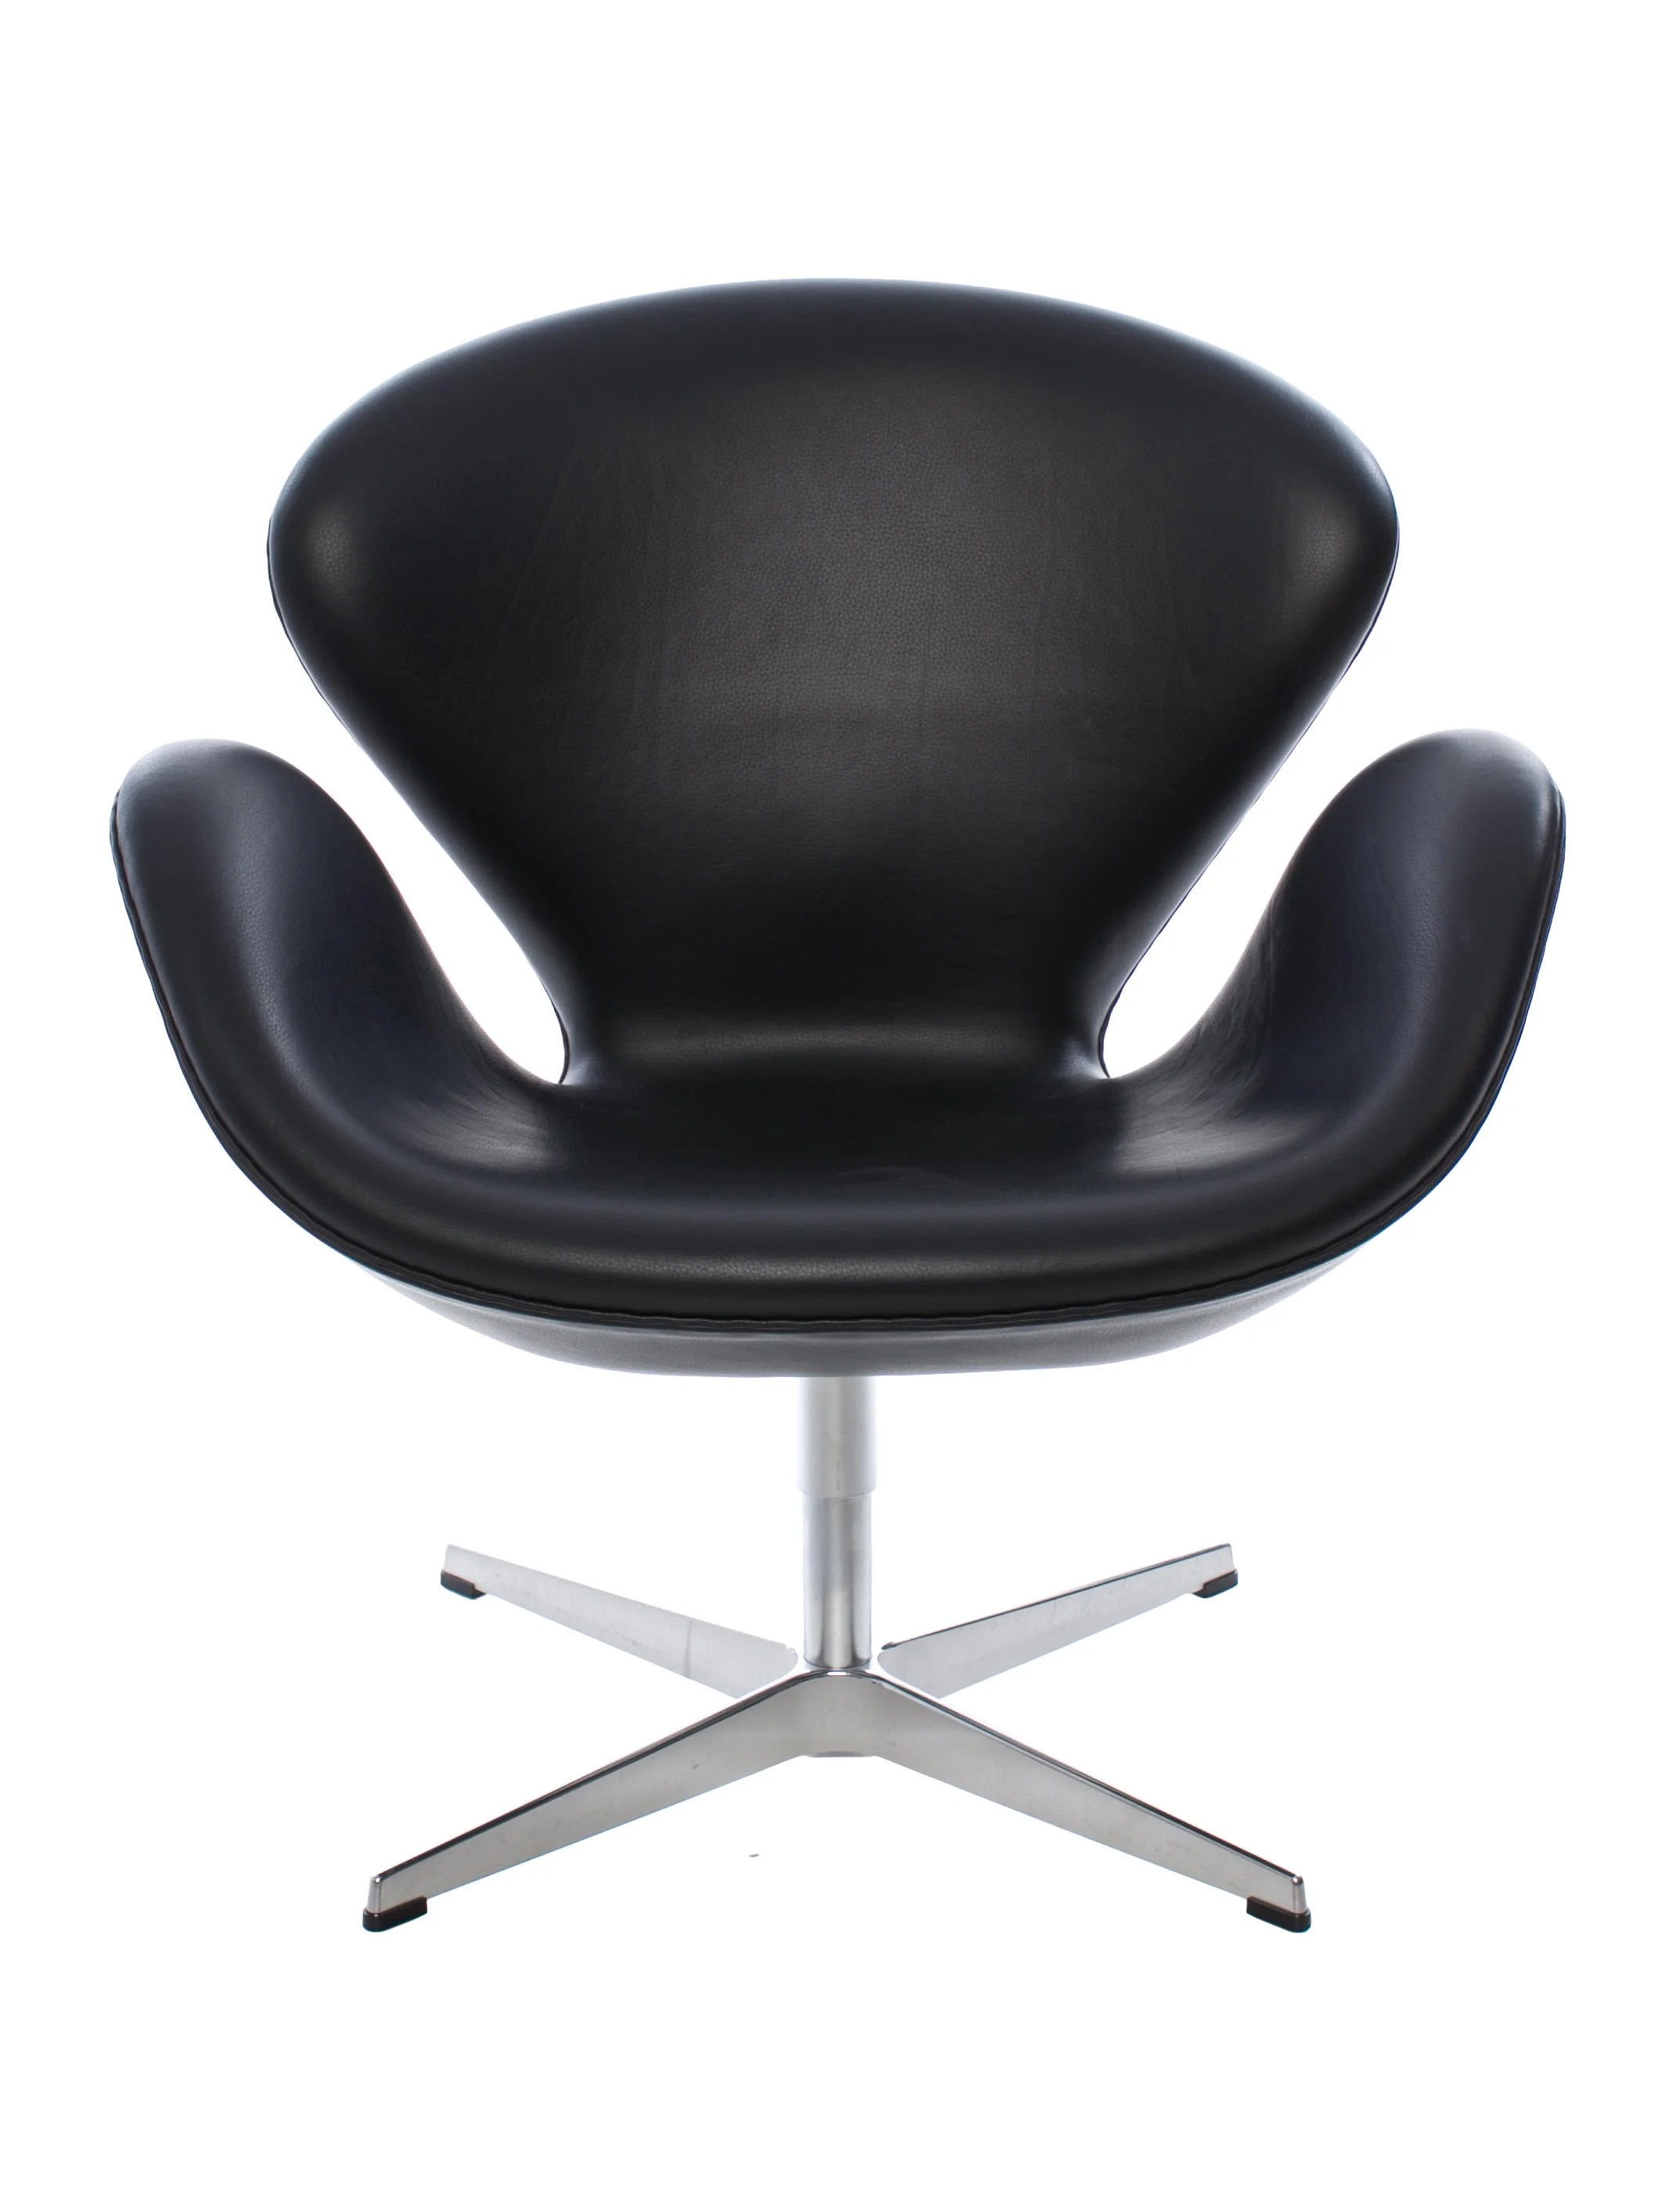 Swan Chair Arne Jacobsen Swan Chair - Furniture - Ajb20002 | The Realreal